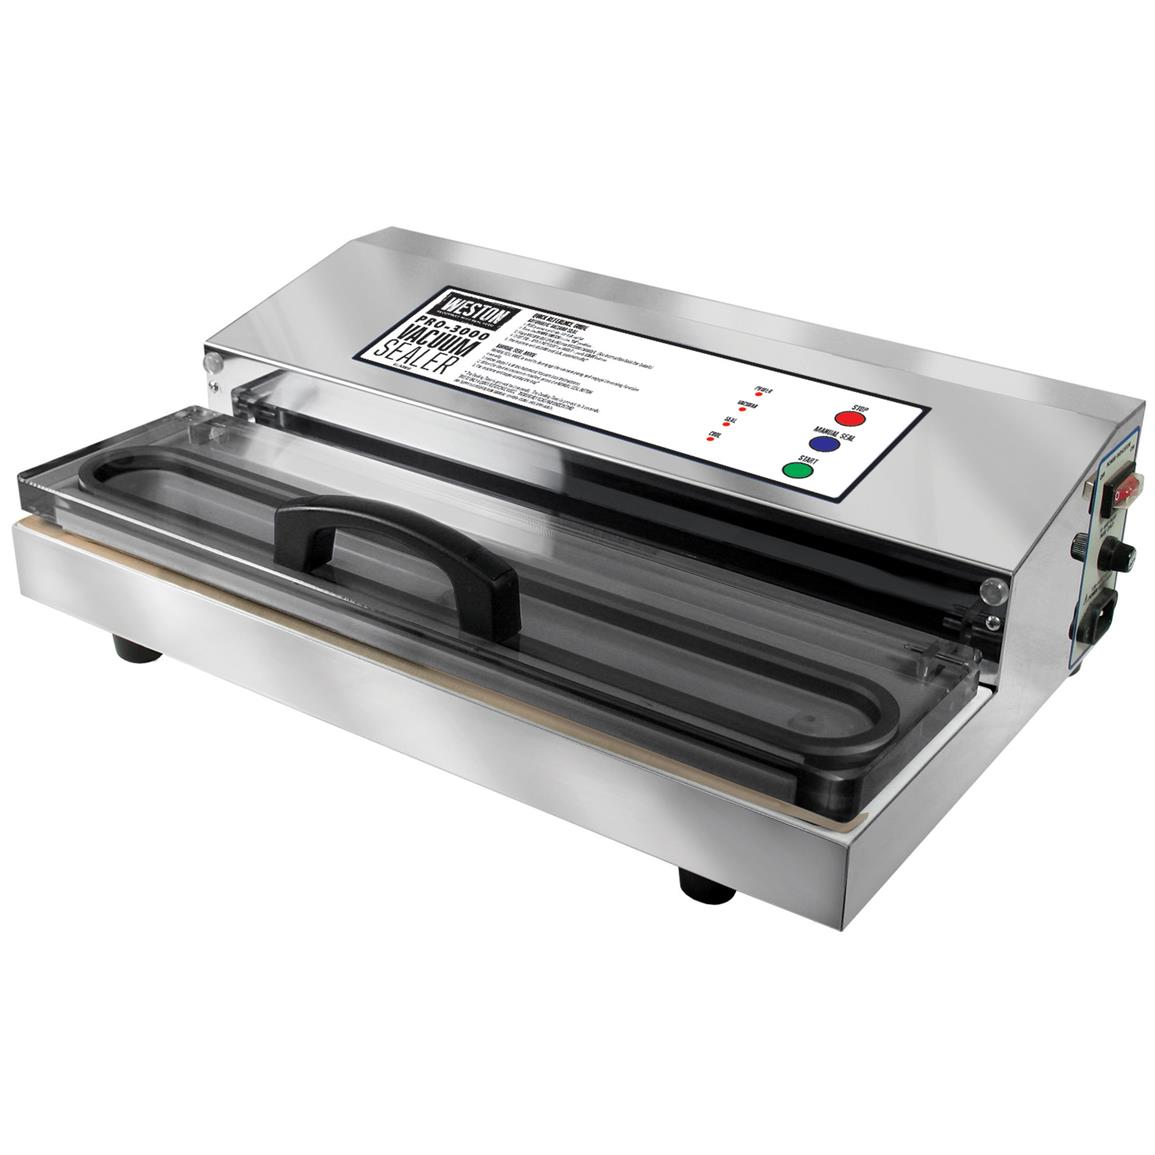 Weston® Pro-2300 Stainless Steel Vacuum Sealer